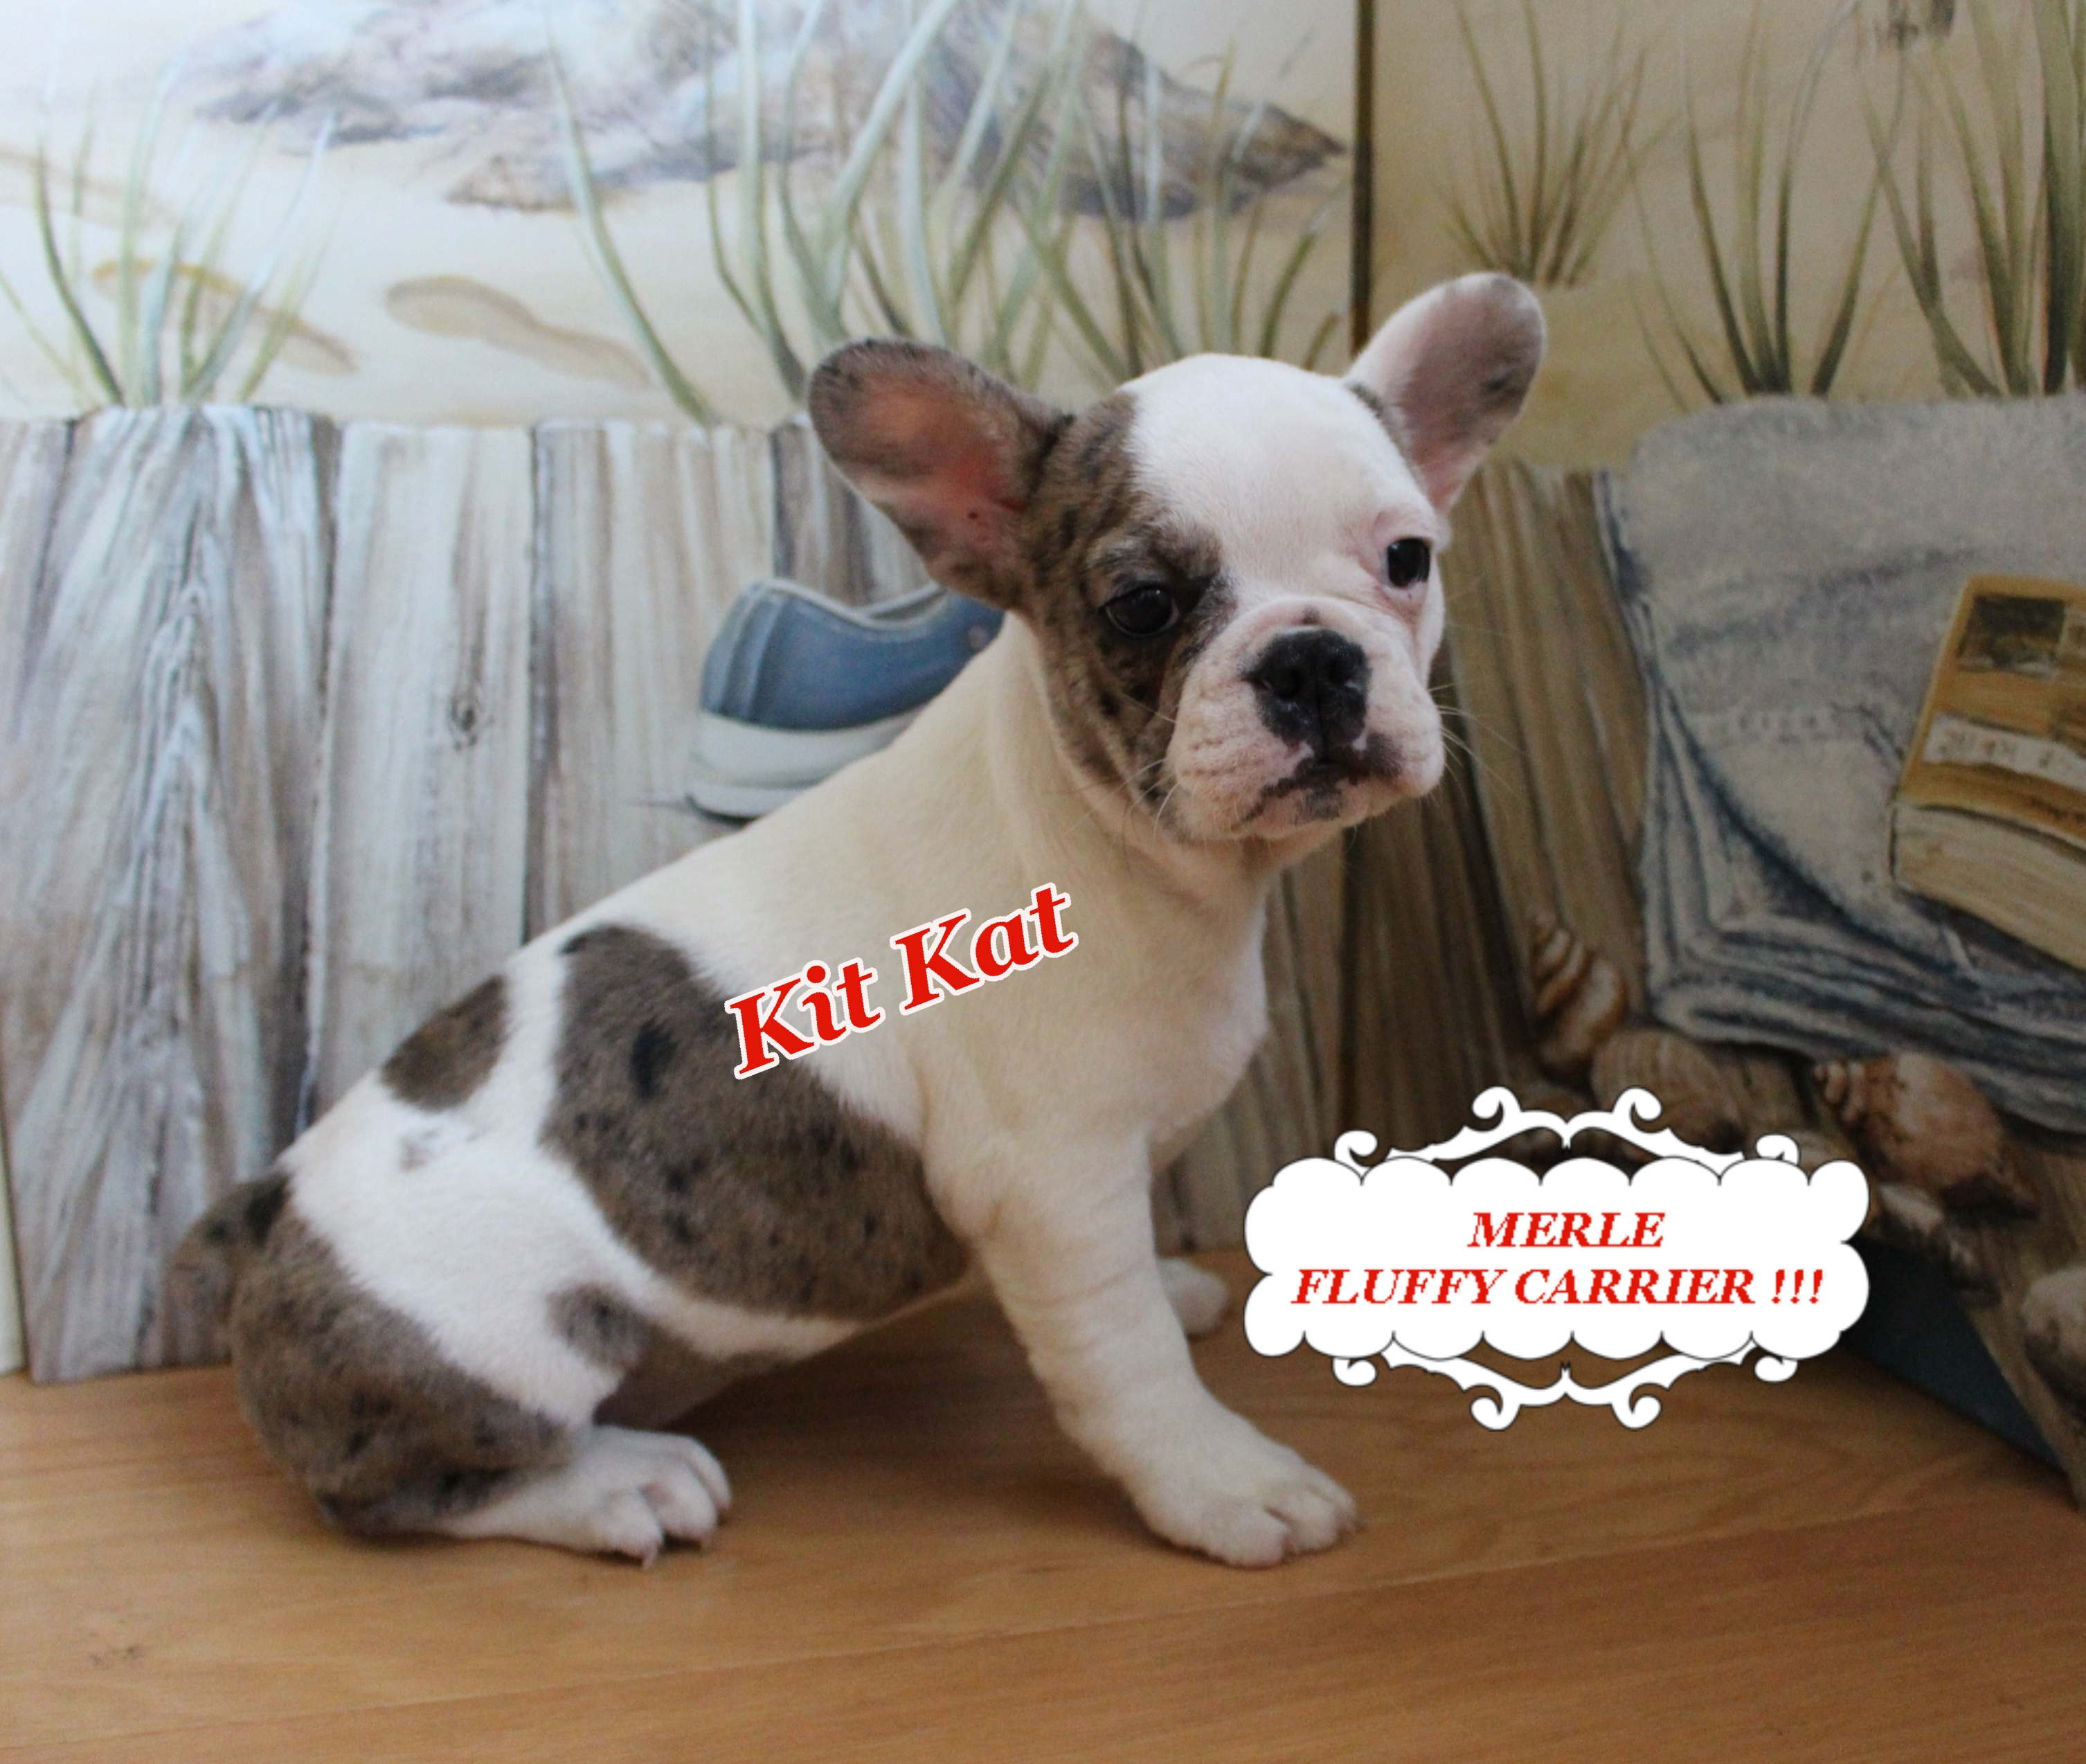 #FrenchBulldogPuppy #AvailPuppy #FluffyFrenchie #MerleFrenchie #SouthernTerritoryFrenchies